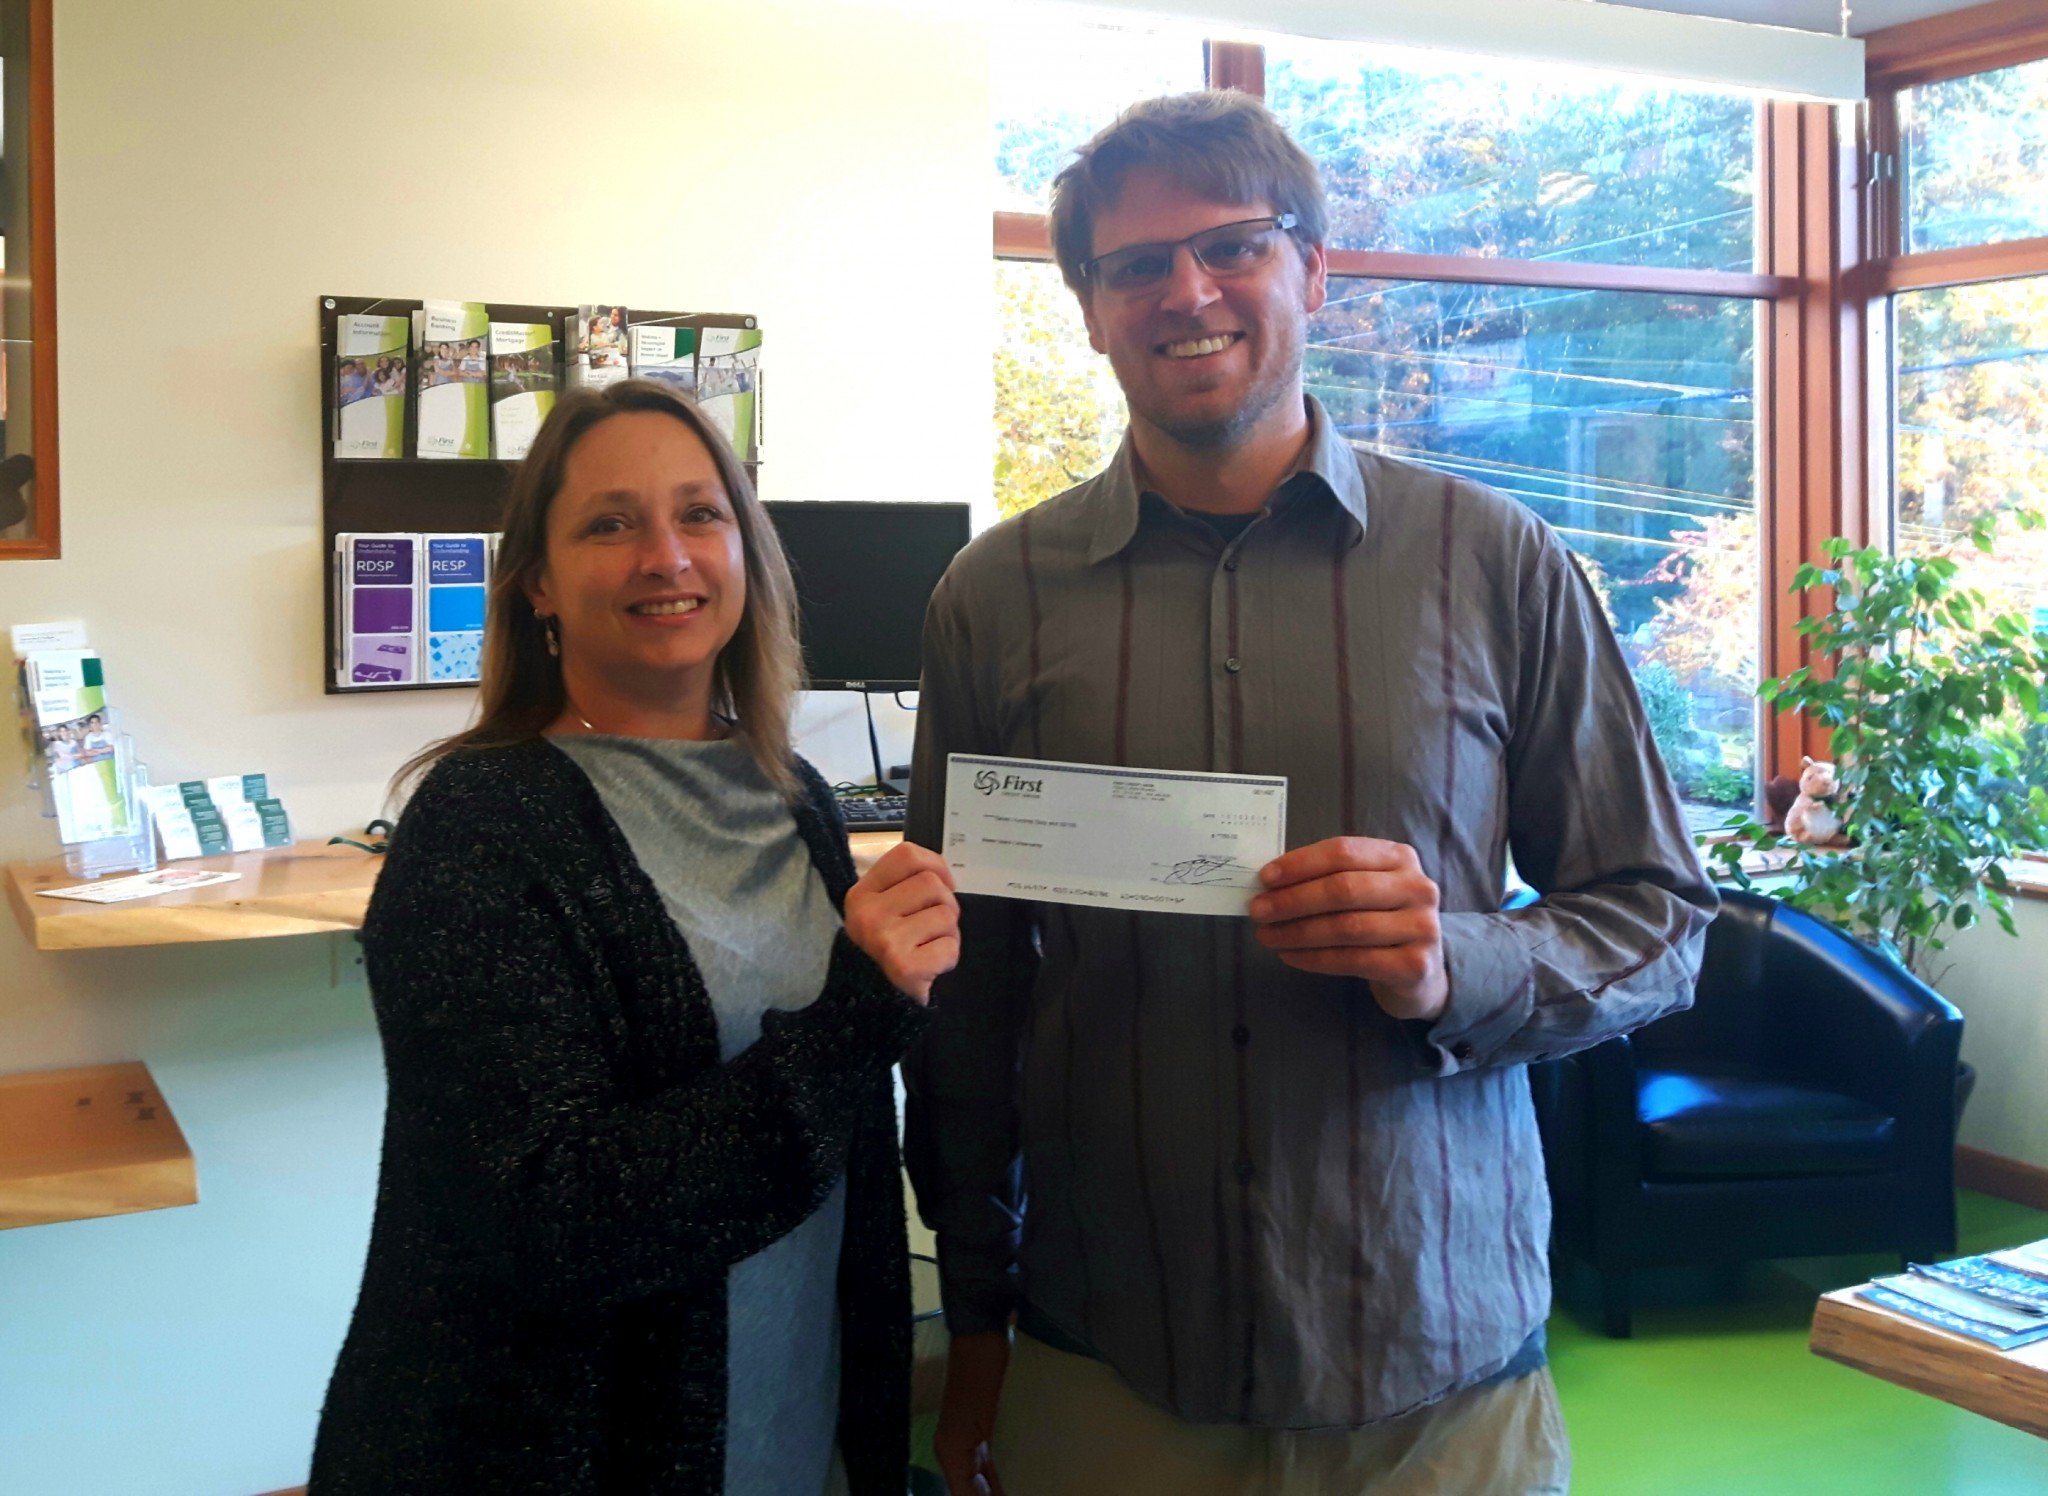 Adrian van Lidth de Jeude (our Treasurer) receives a donation cheque from First Credit Union